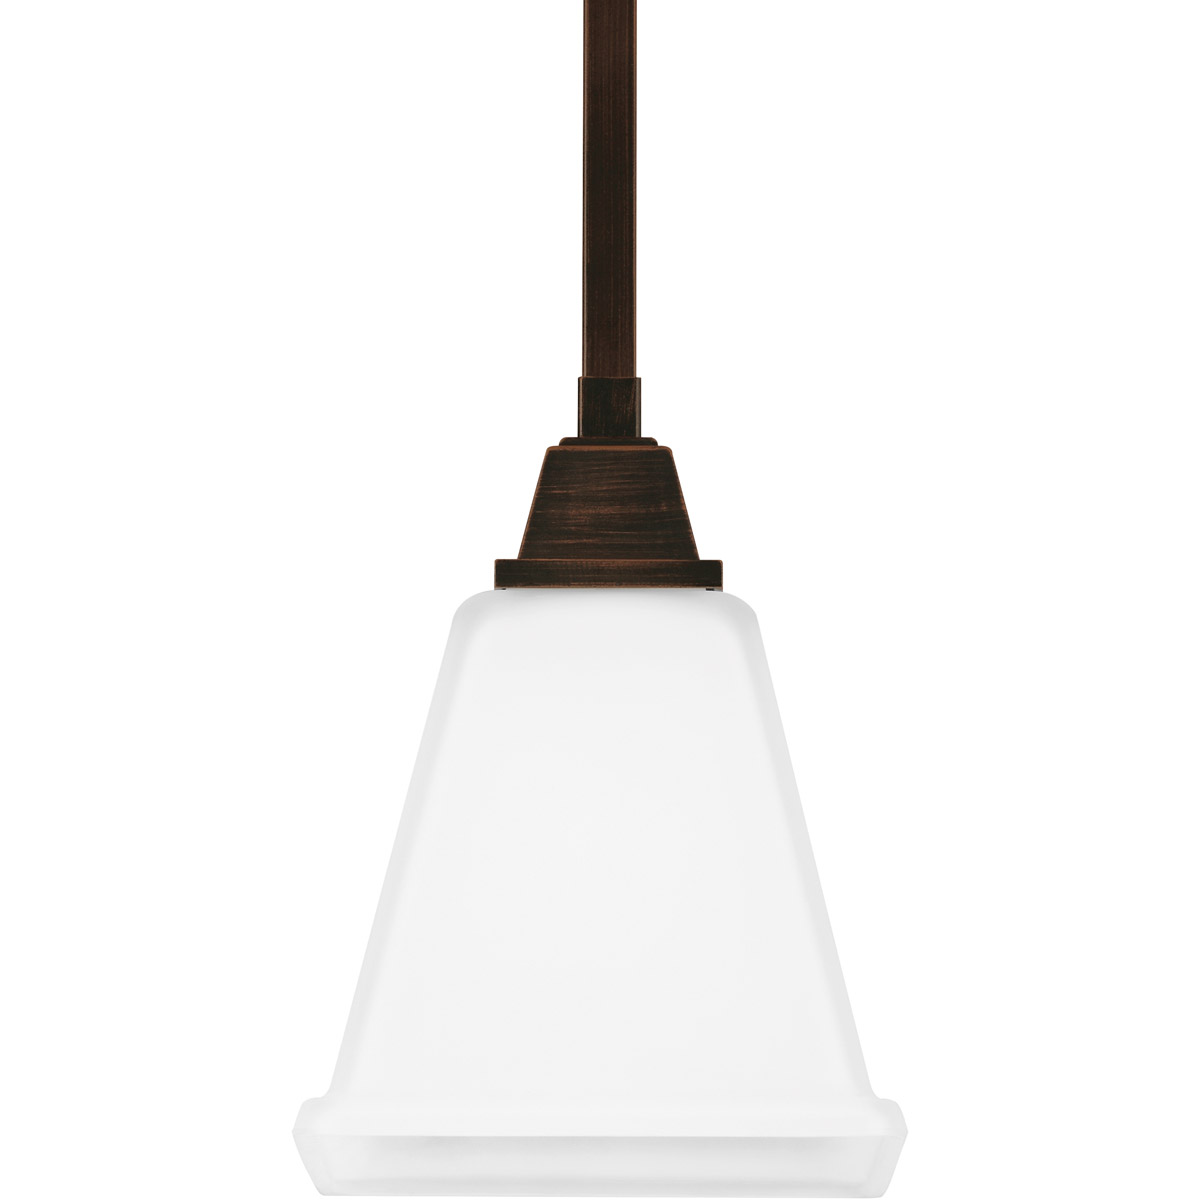 Sea Gull 6150401-710 Denhelm 1 Light 6 inch Burnt Sienna Mini Pendant Ceiling Light in Standard photo